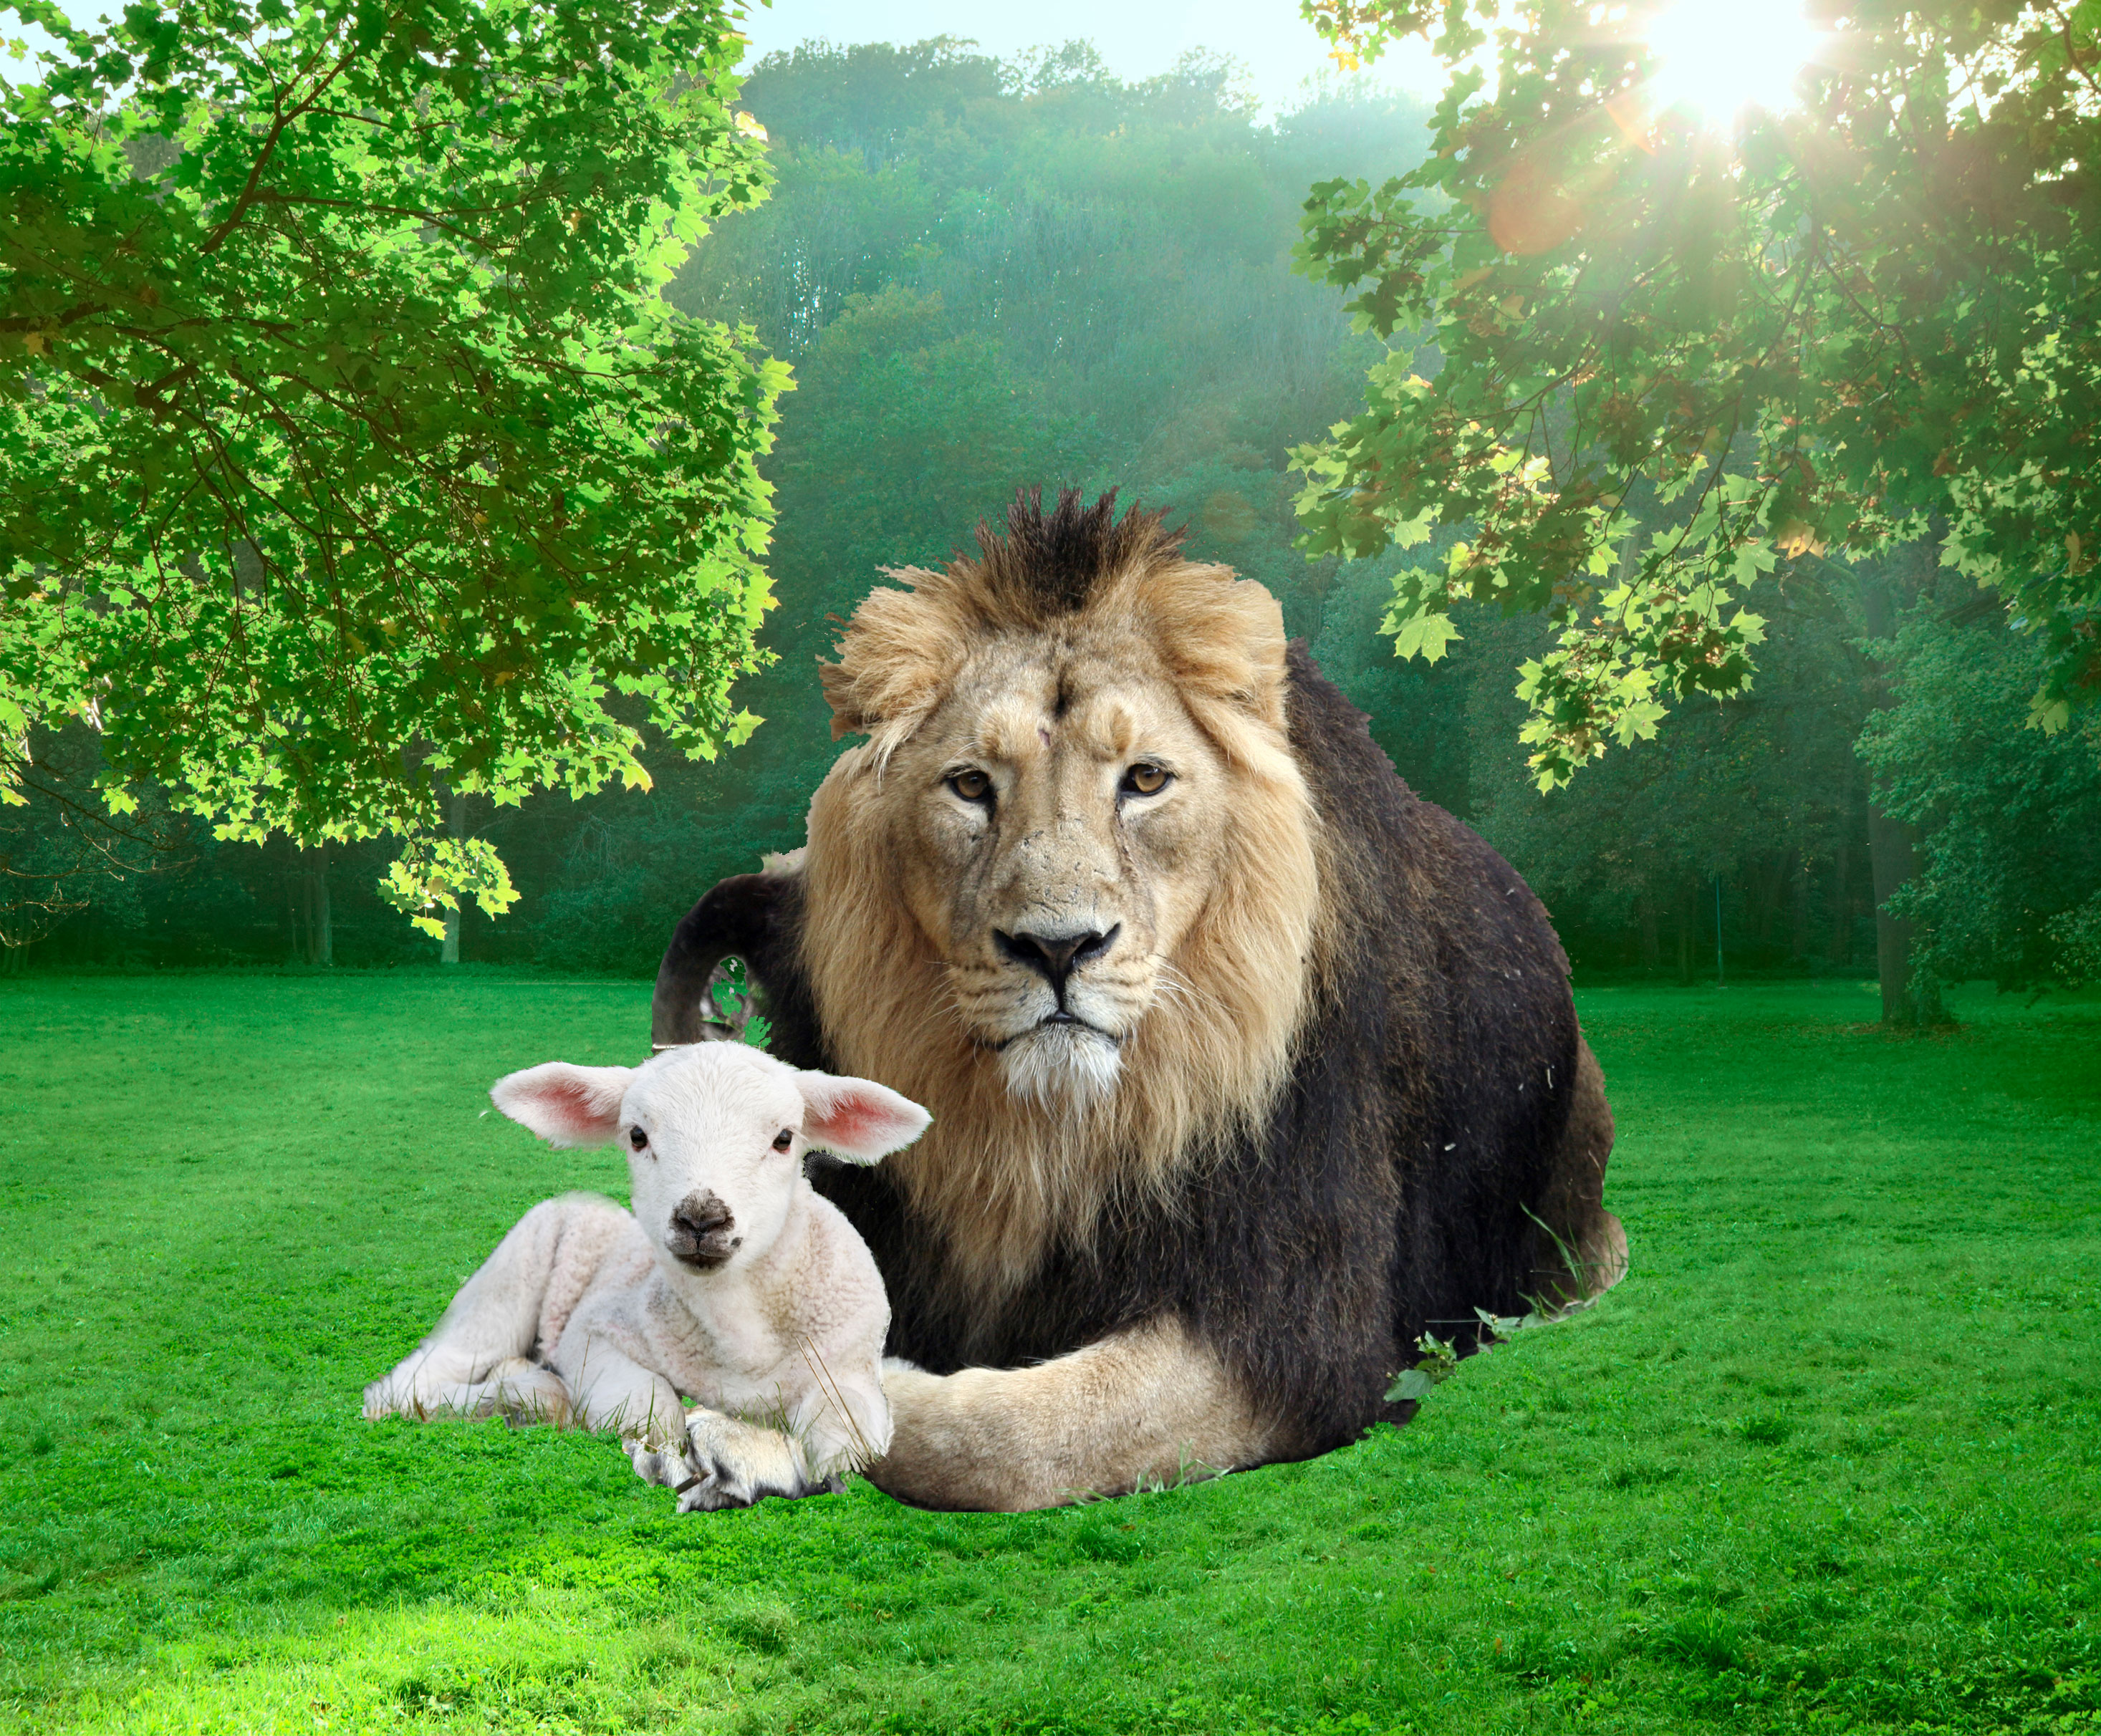 little tyke the true story of a vegetarian lion compassion circle